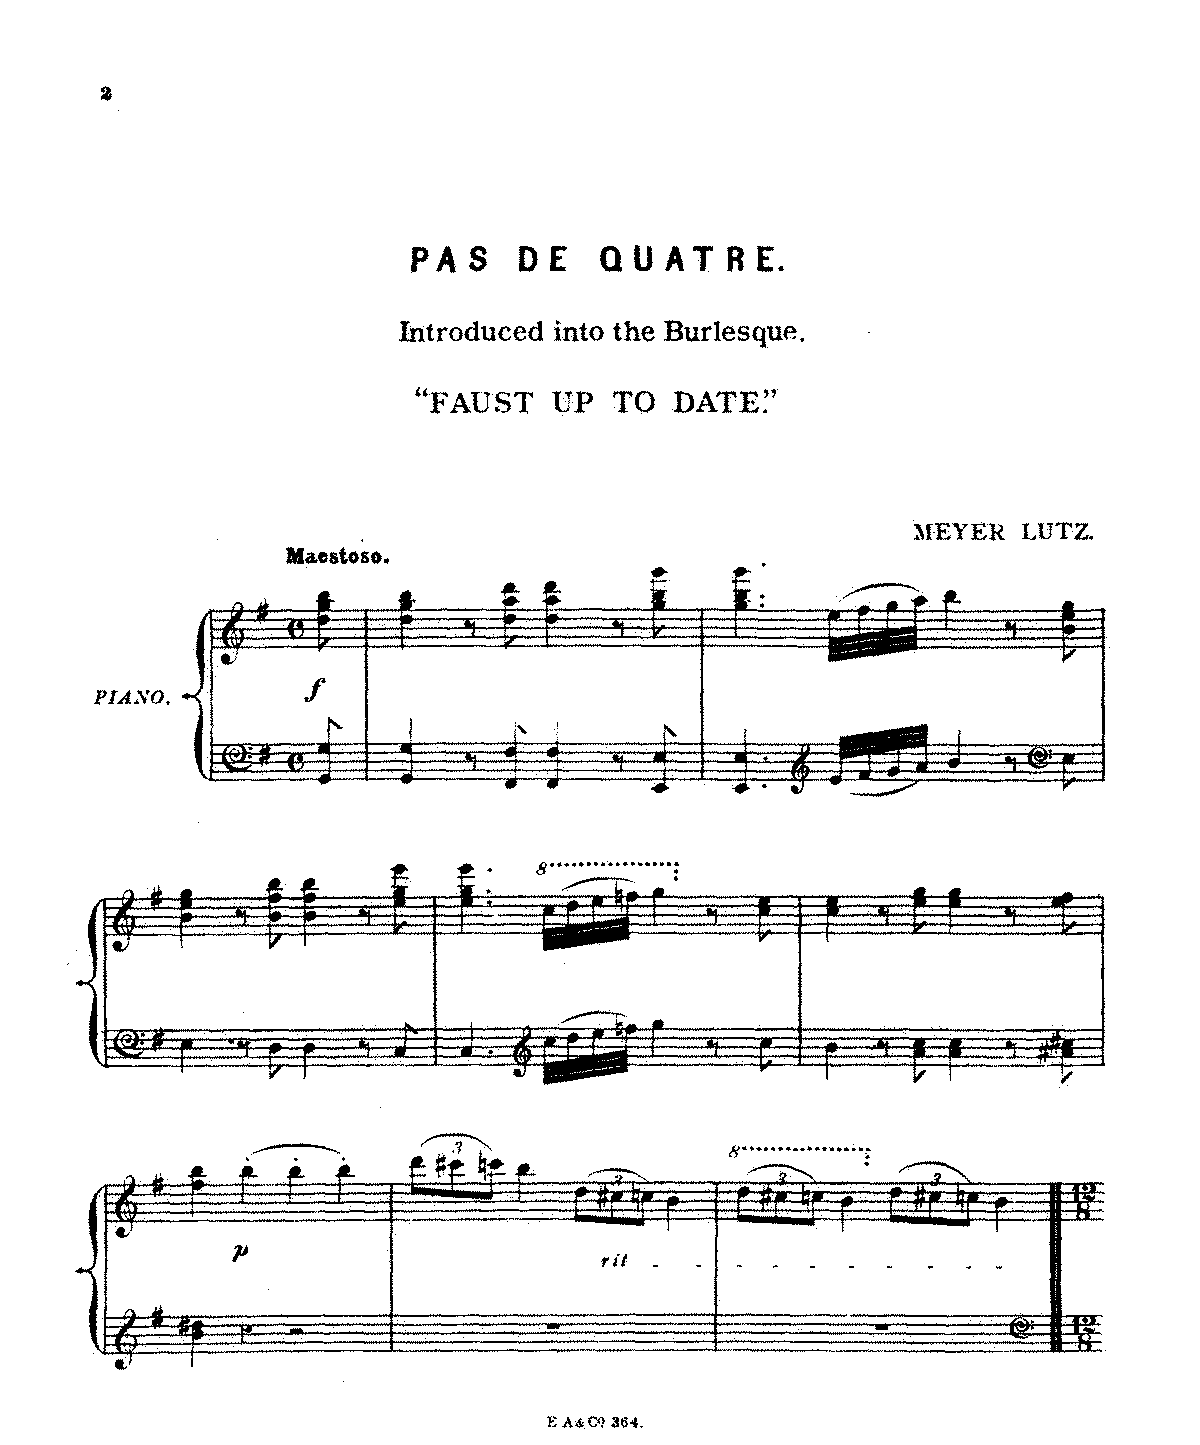 PMLP265843-MEYER-LUTZ Pas de Quatre from Faust Up To Date.pdf